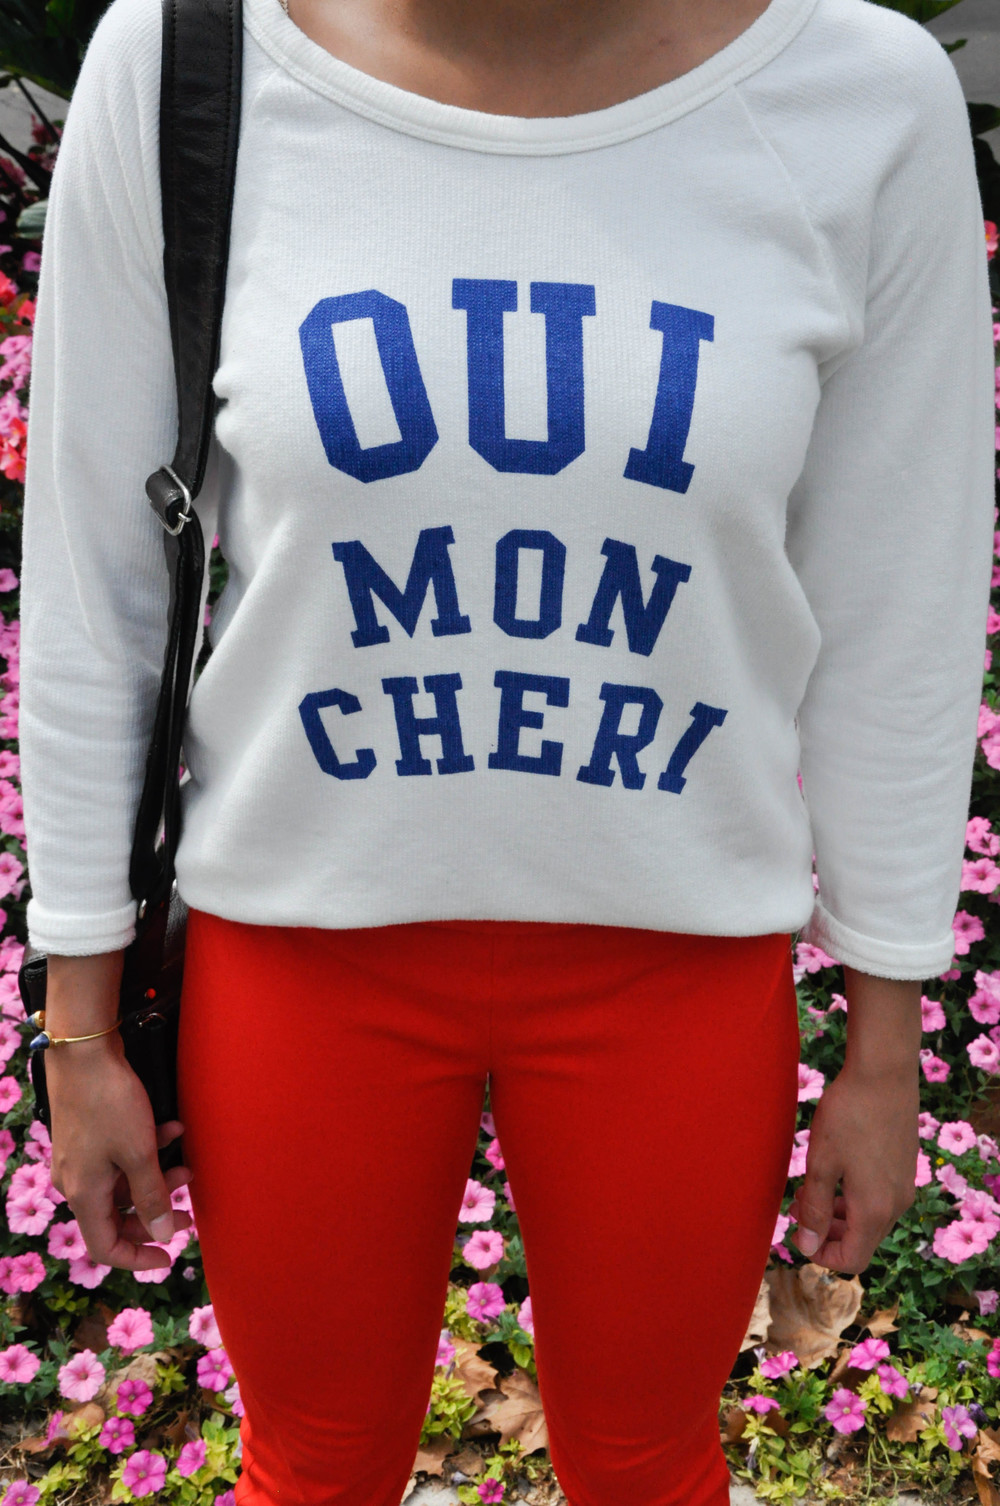 Oui mon chéri, I truly do love the french writing on clothing trend! J.Crew has been making strides with this trend by putting french saying on t-shirts, sweaters, and more. This light waffle like material is great for early Fall as the wind starts to pick up! It's a great sweater to play around with other colorful outfit choices, as I did with my pants. It allows for the words to pop if more colors get involved!